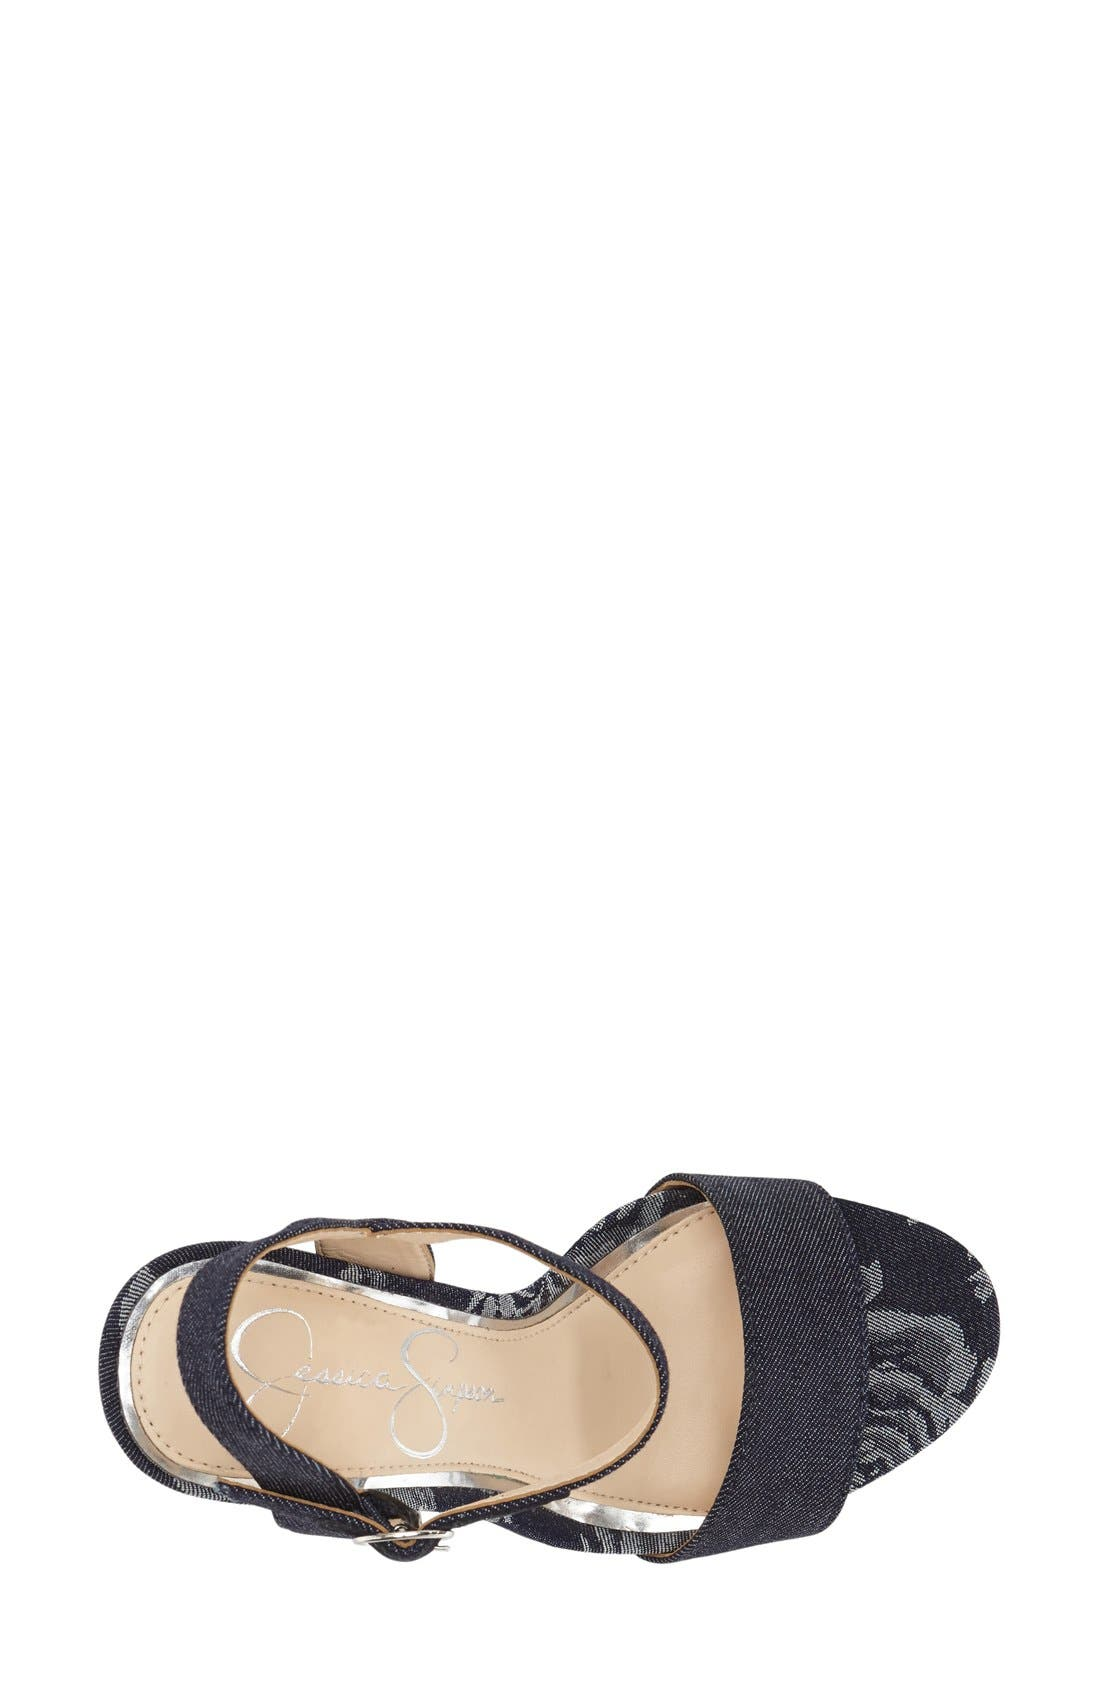 Alternate Image 3  - Jessica Simpson 'Blaney' Platform Sandal (Women)